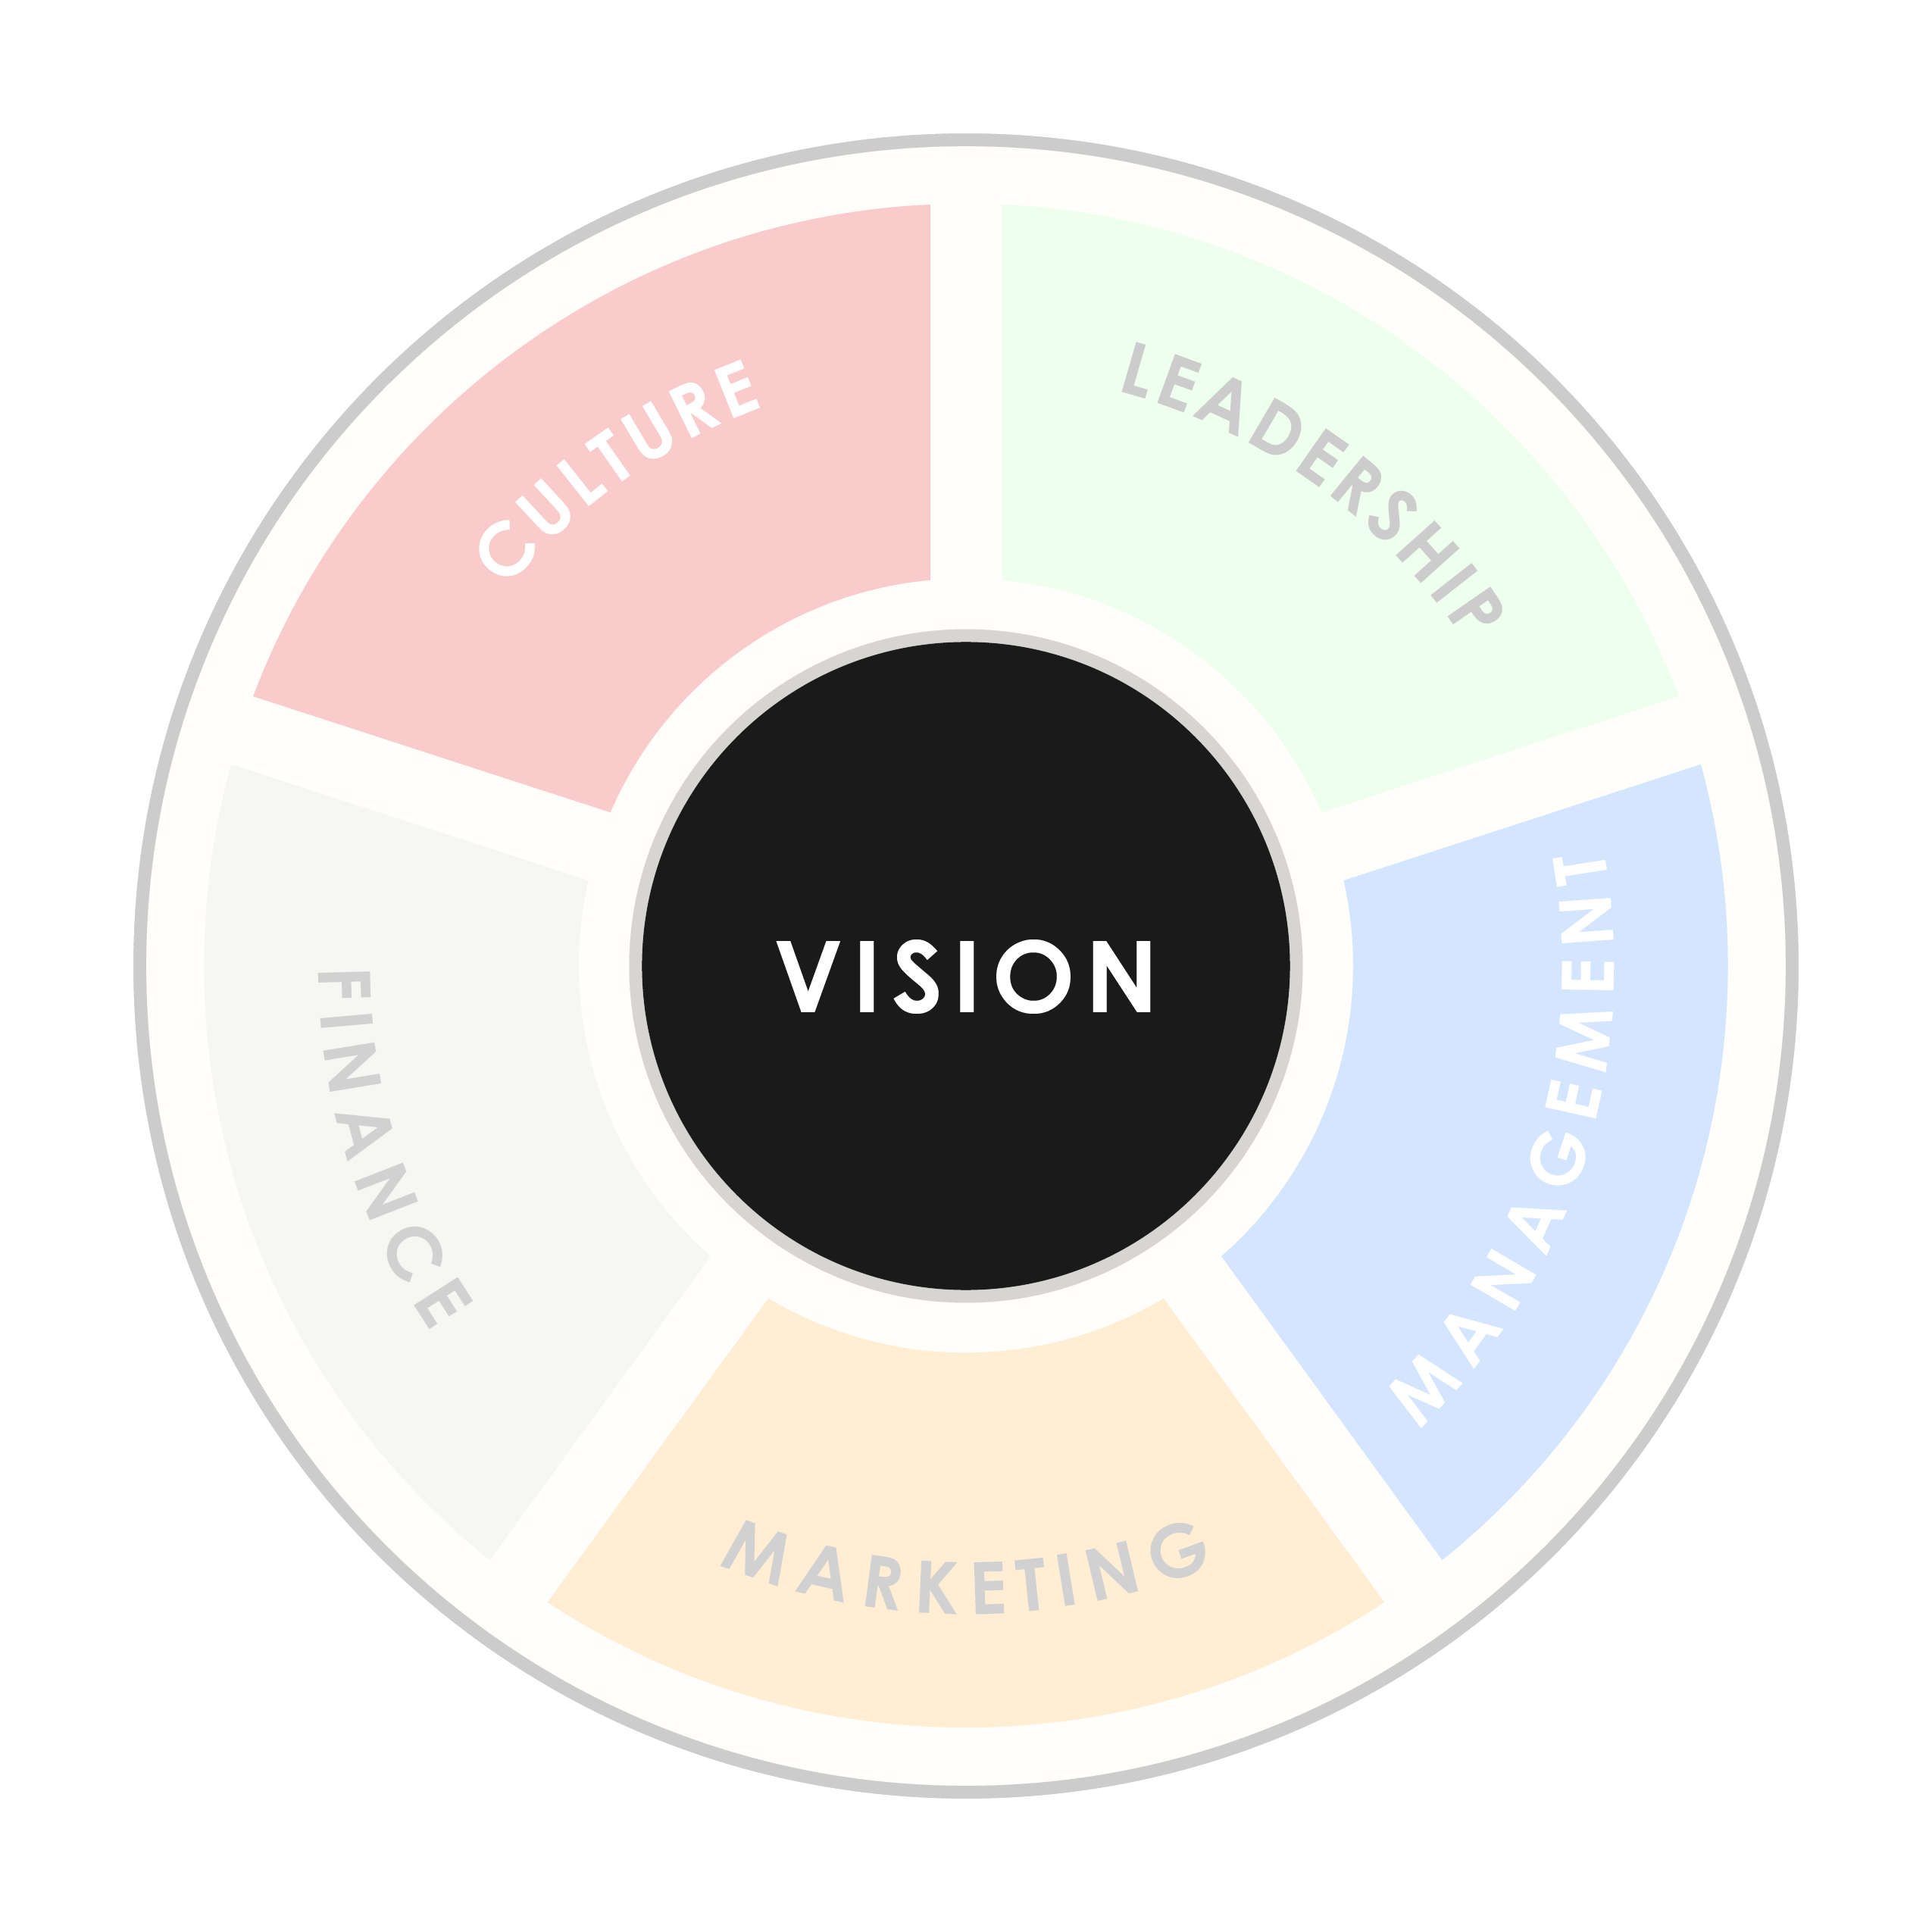 Wheel of 6 Pieces of a Business - Vision